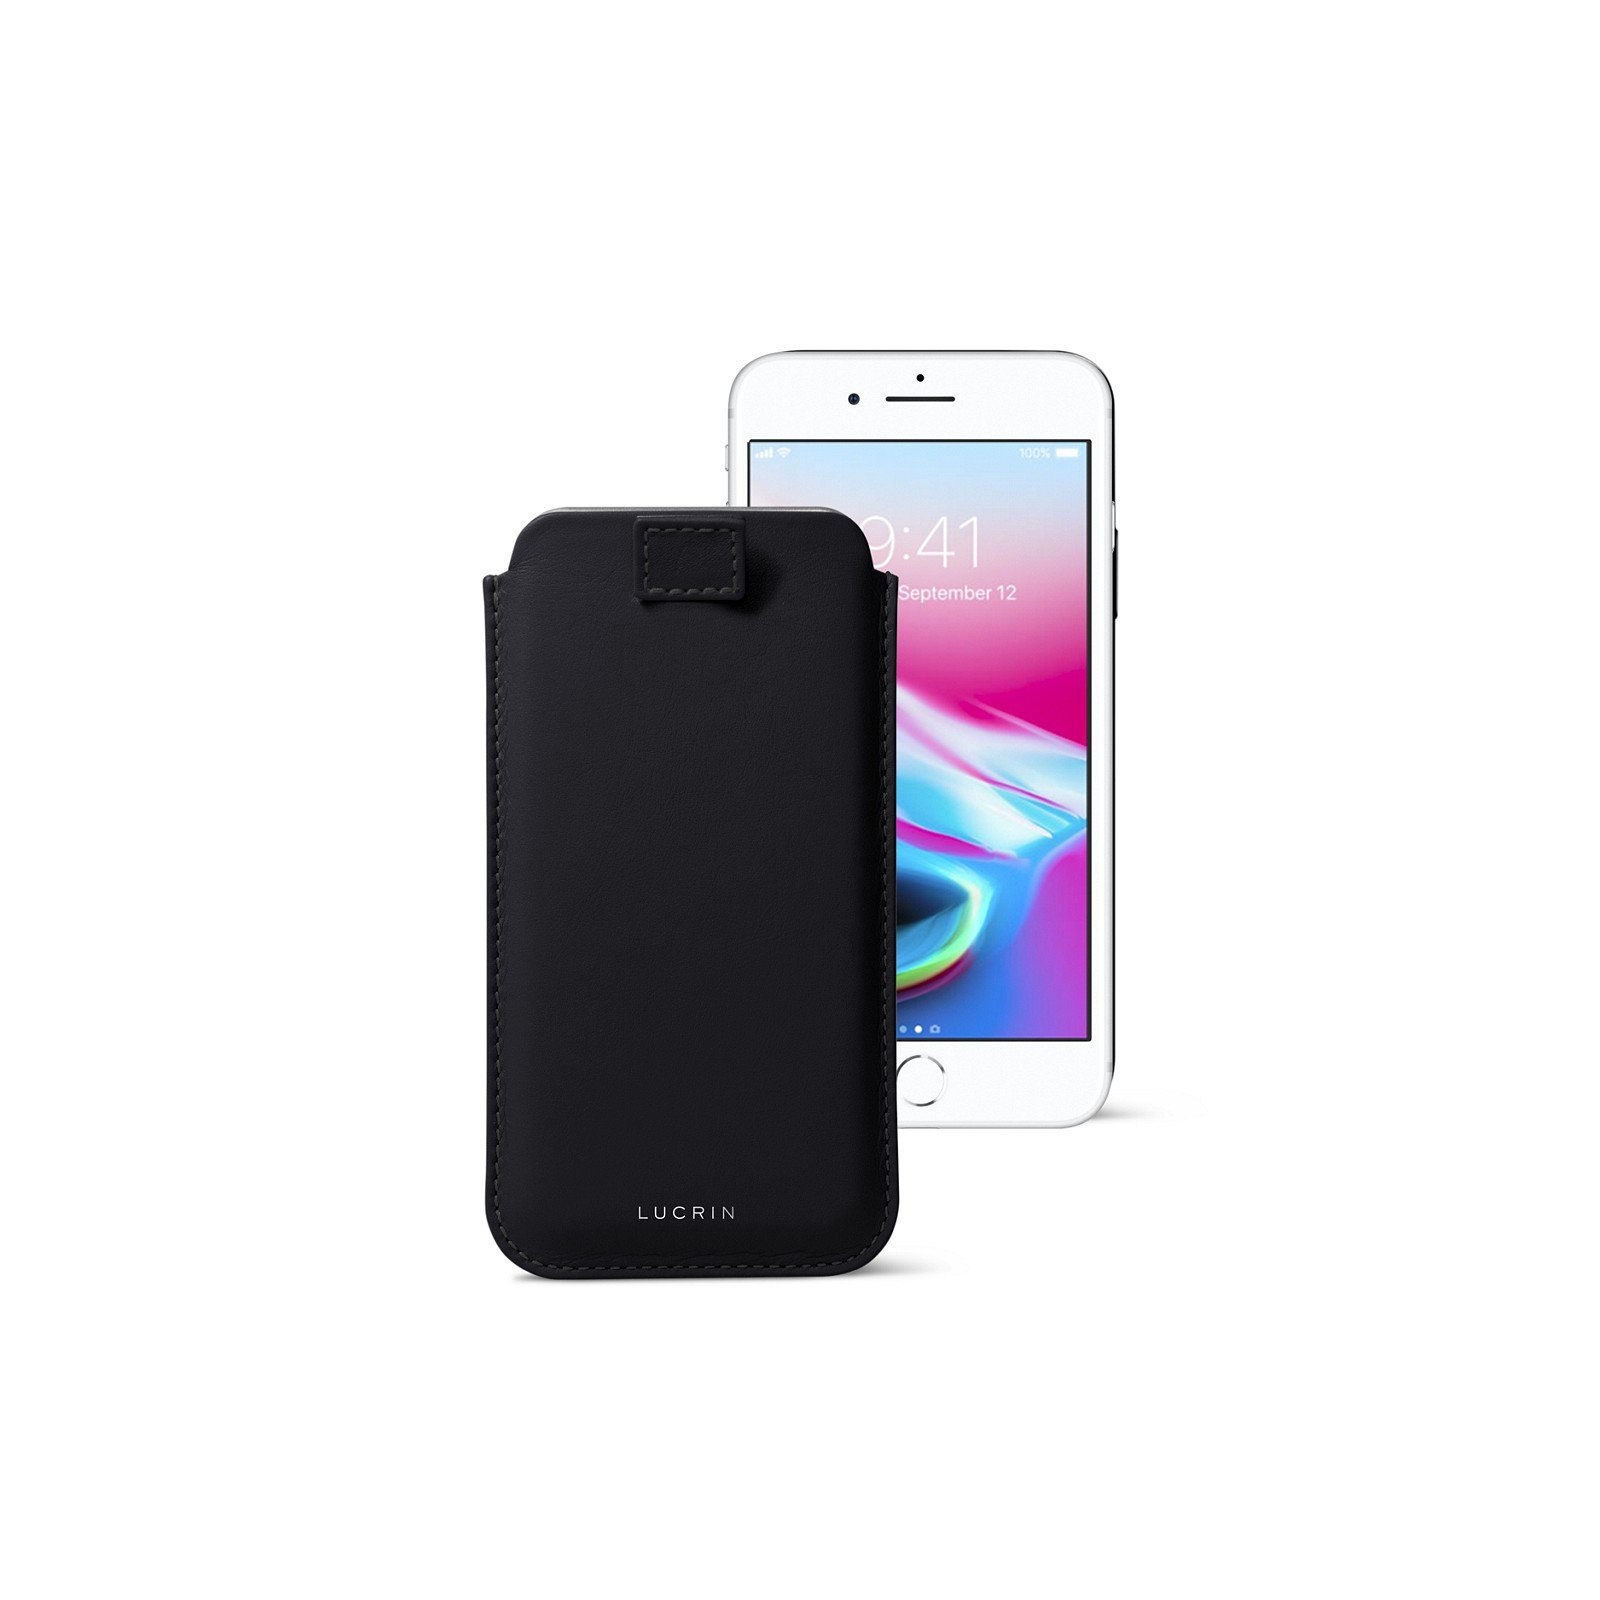 Lucrin - iPhone 8/7/ 6 Ultra Slim Compatible Sleeve, Protective Soft Case with Pull-Up Strap - Black - Genuine Leather by Lucrin